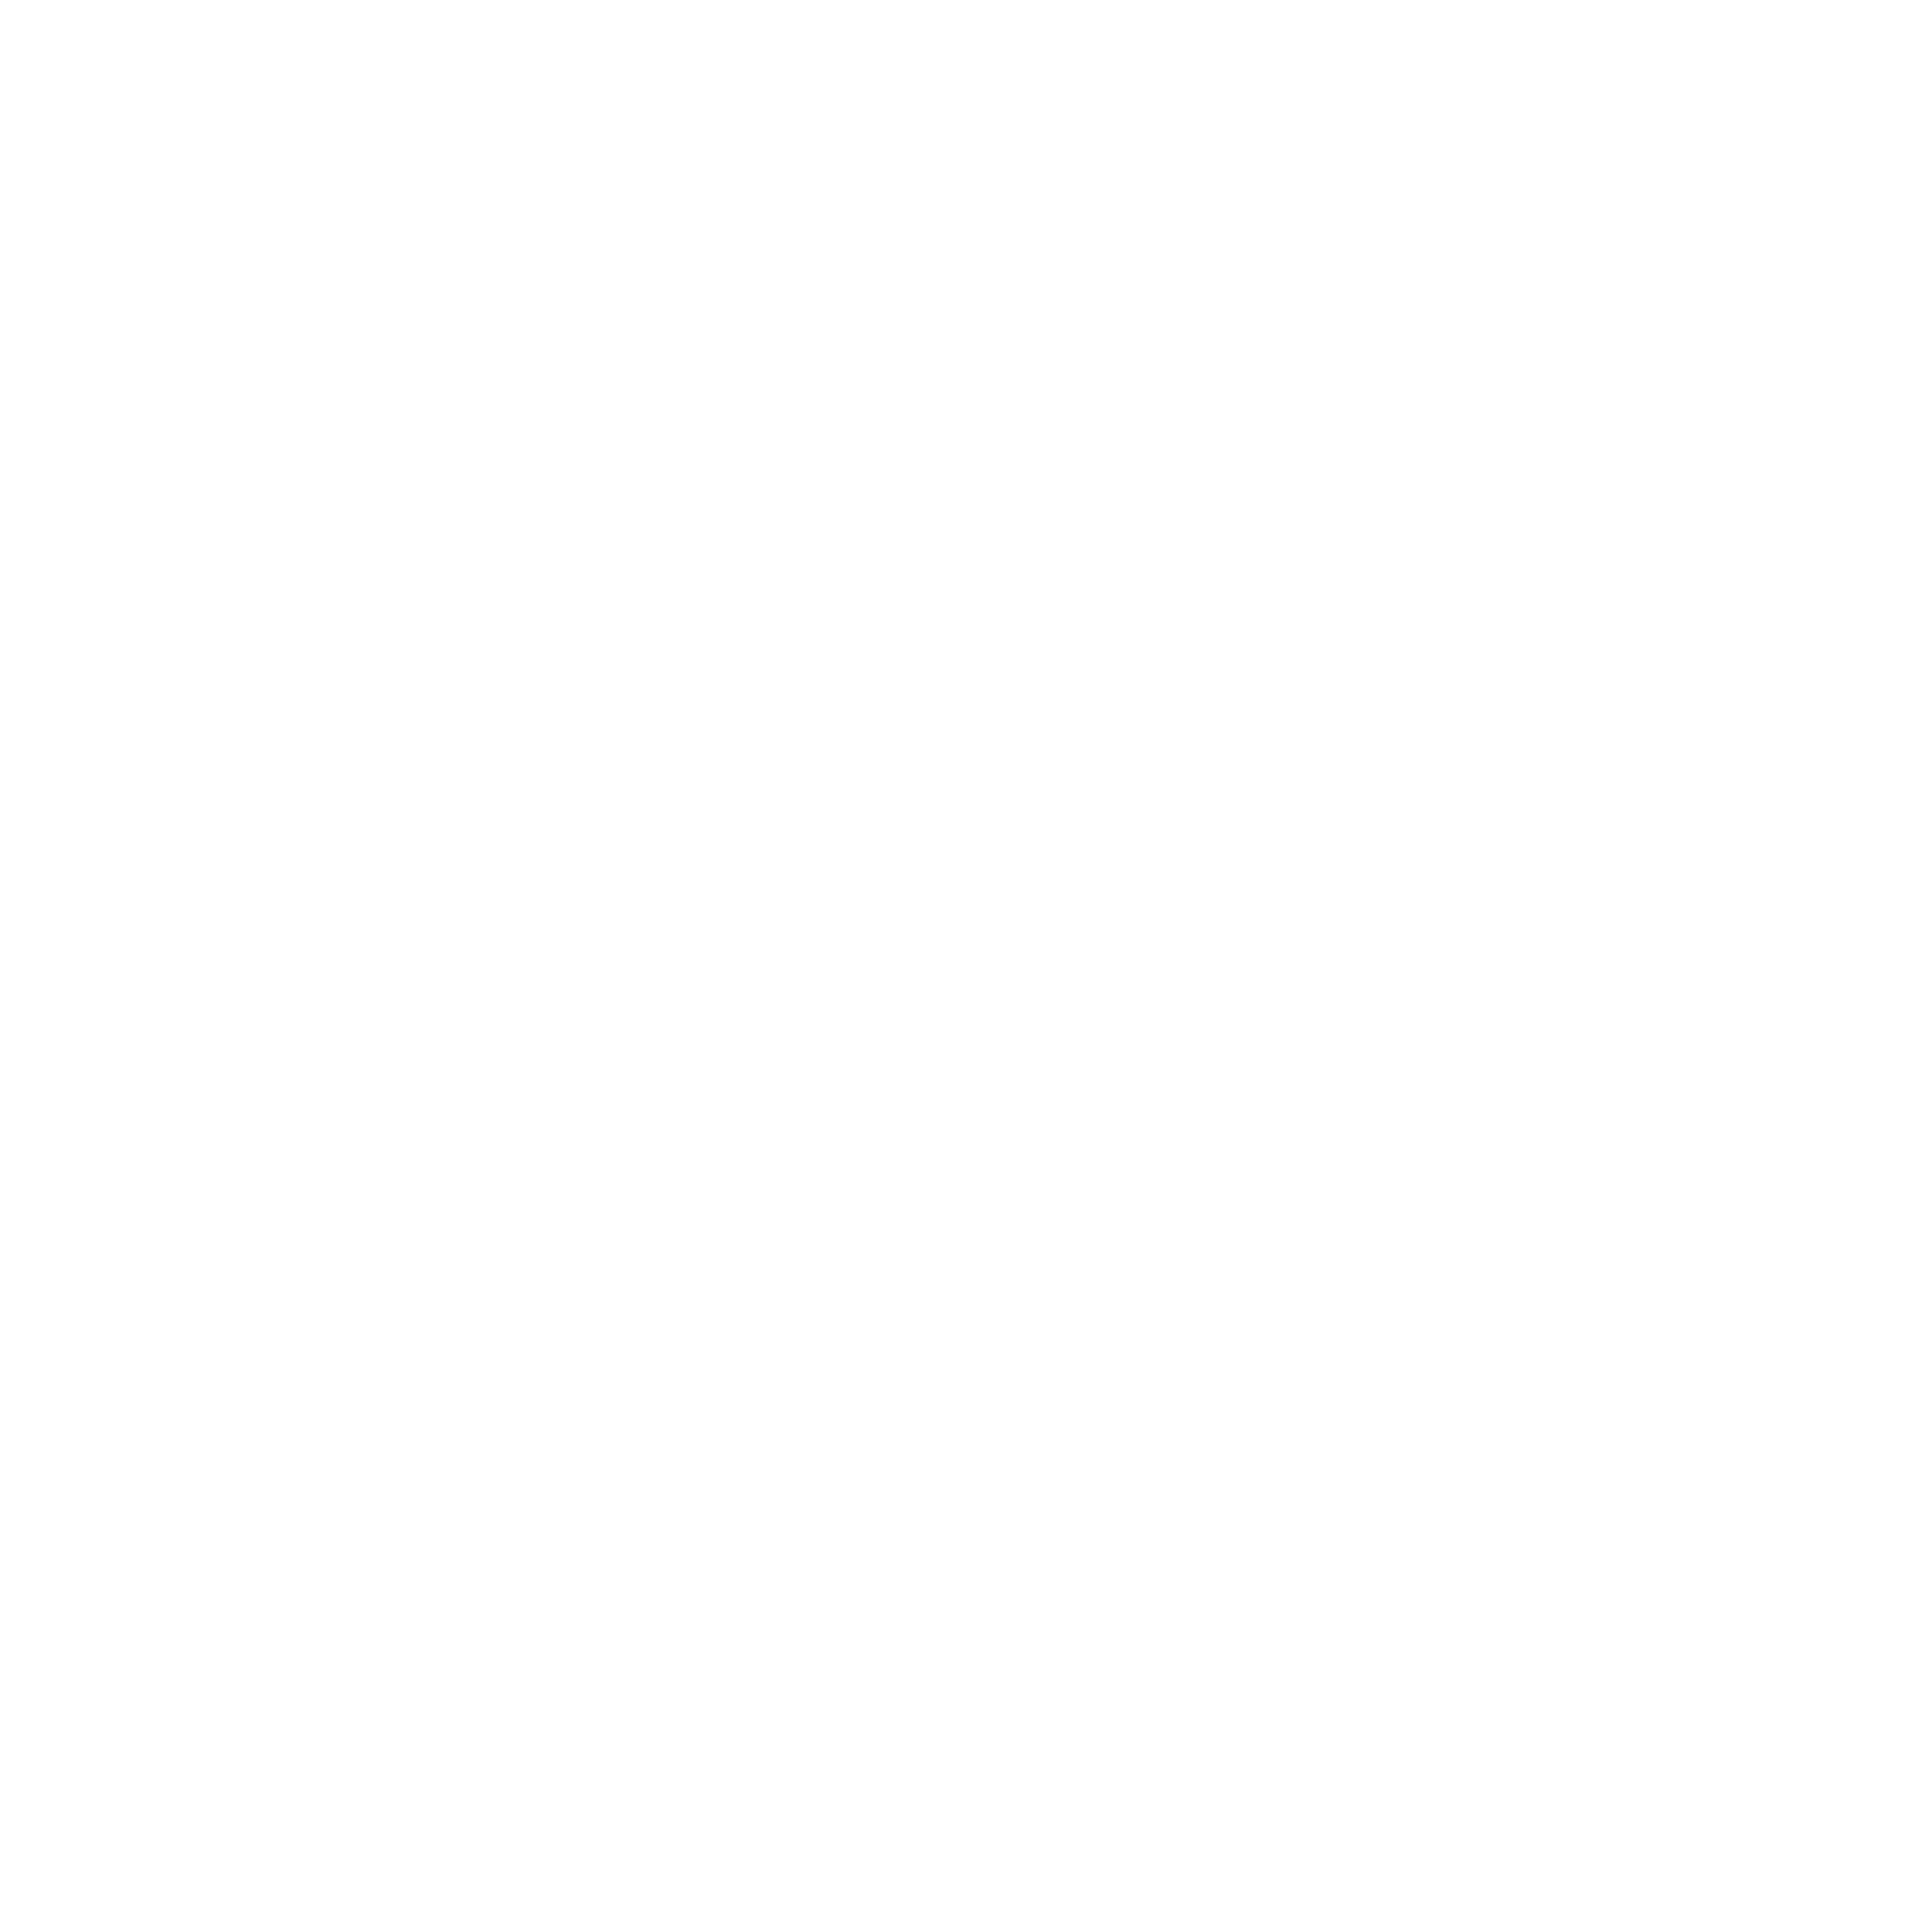 Suzuki Logo Black And White